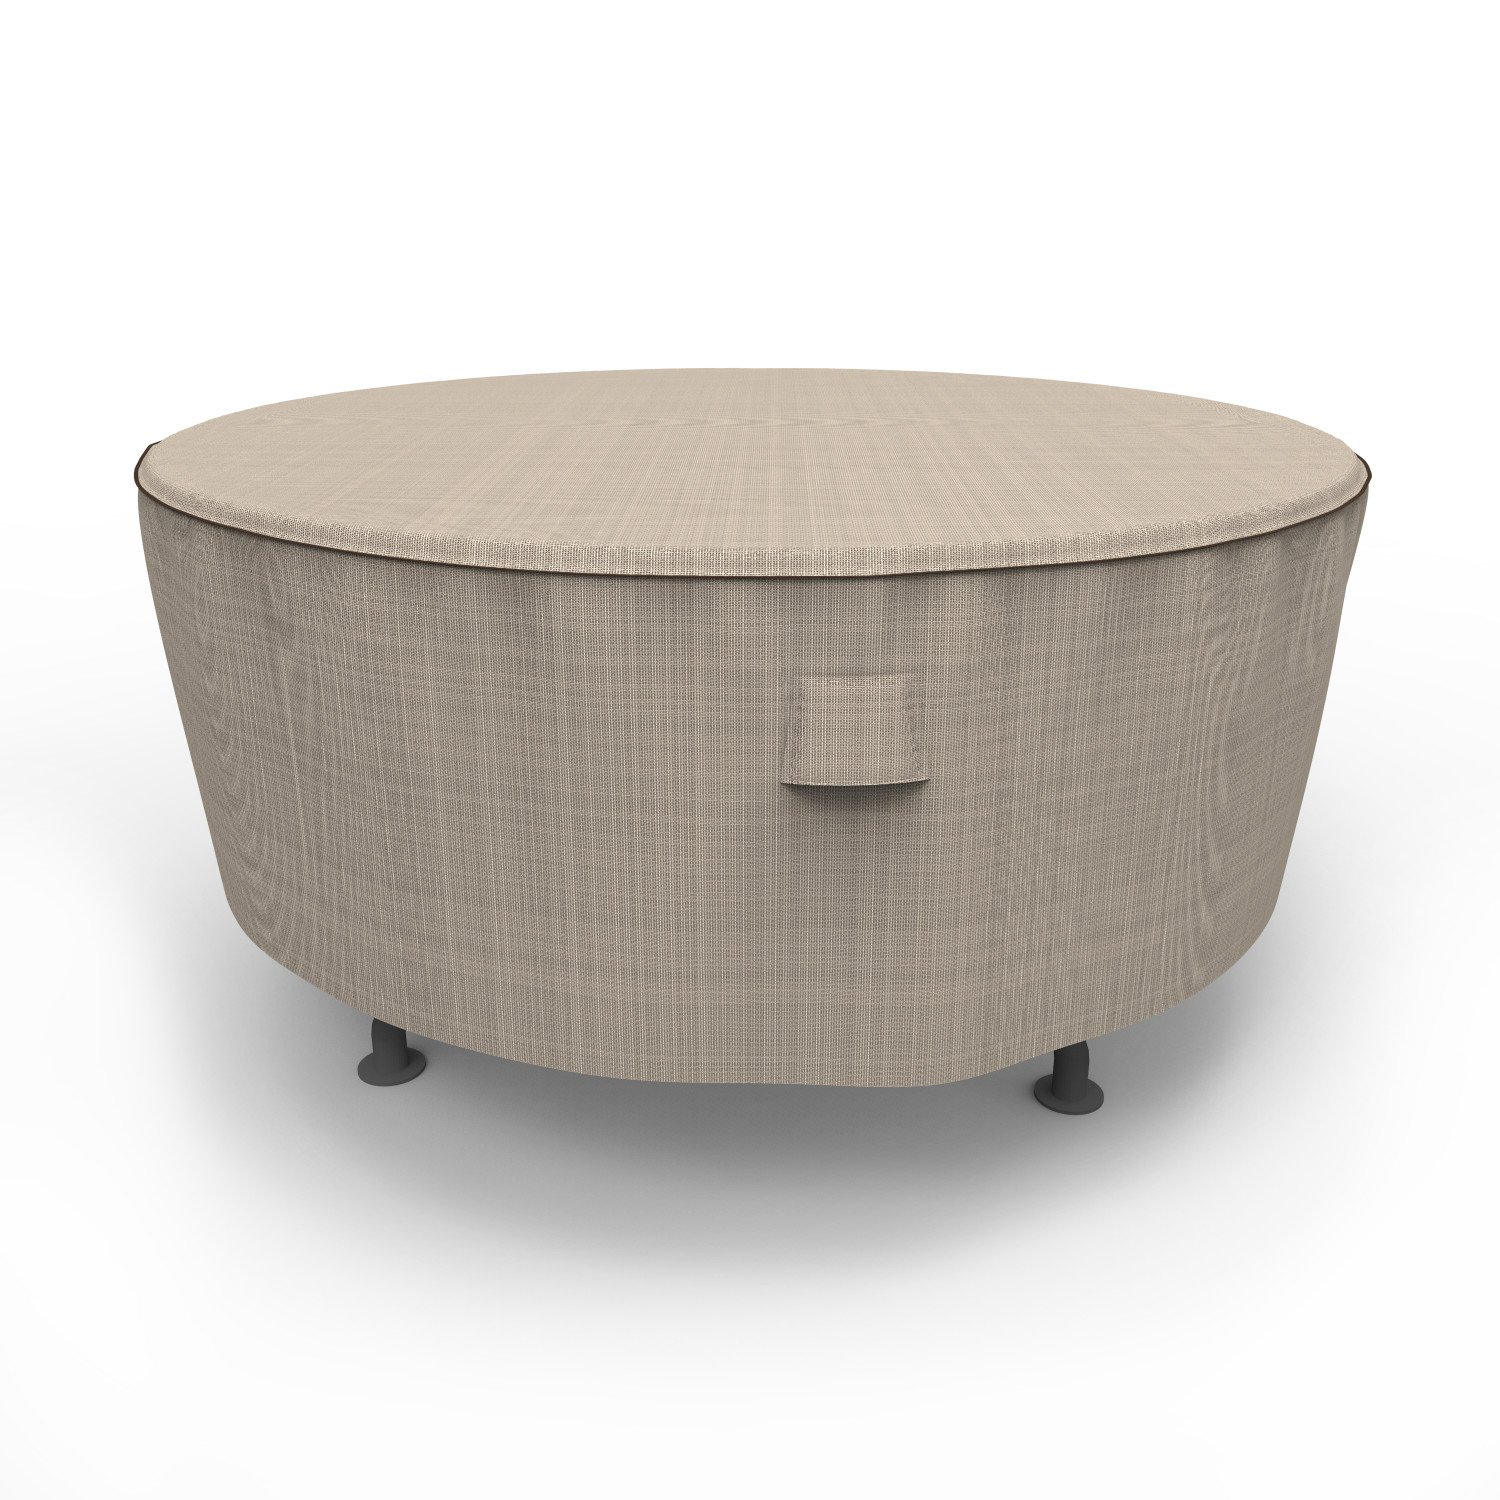 Budge P5A23PMNW2 NeverWet Mojave Round Patio Table Cover, Large, Black Ivory